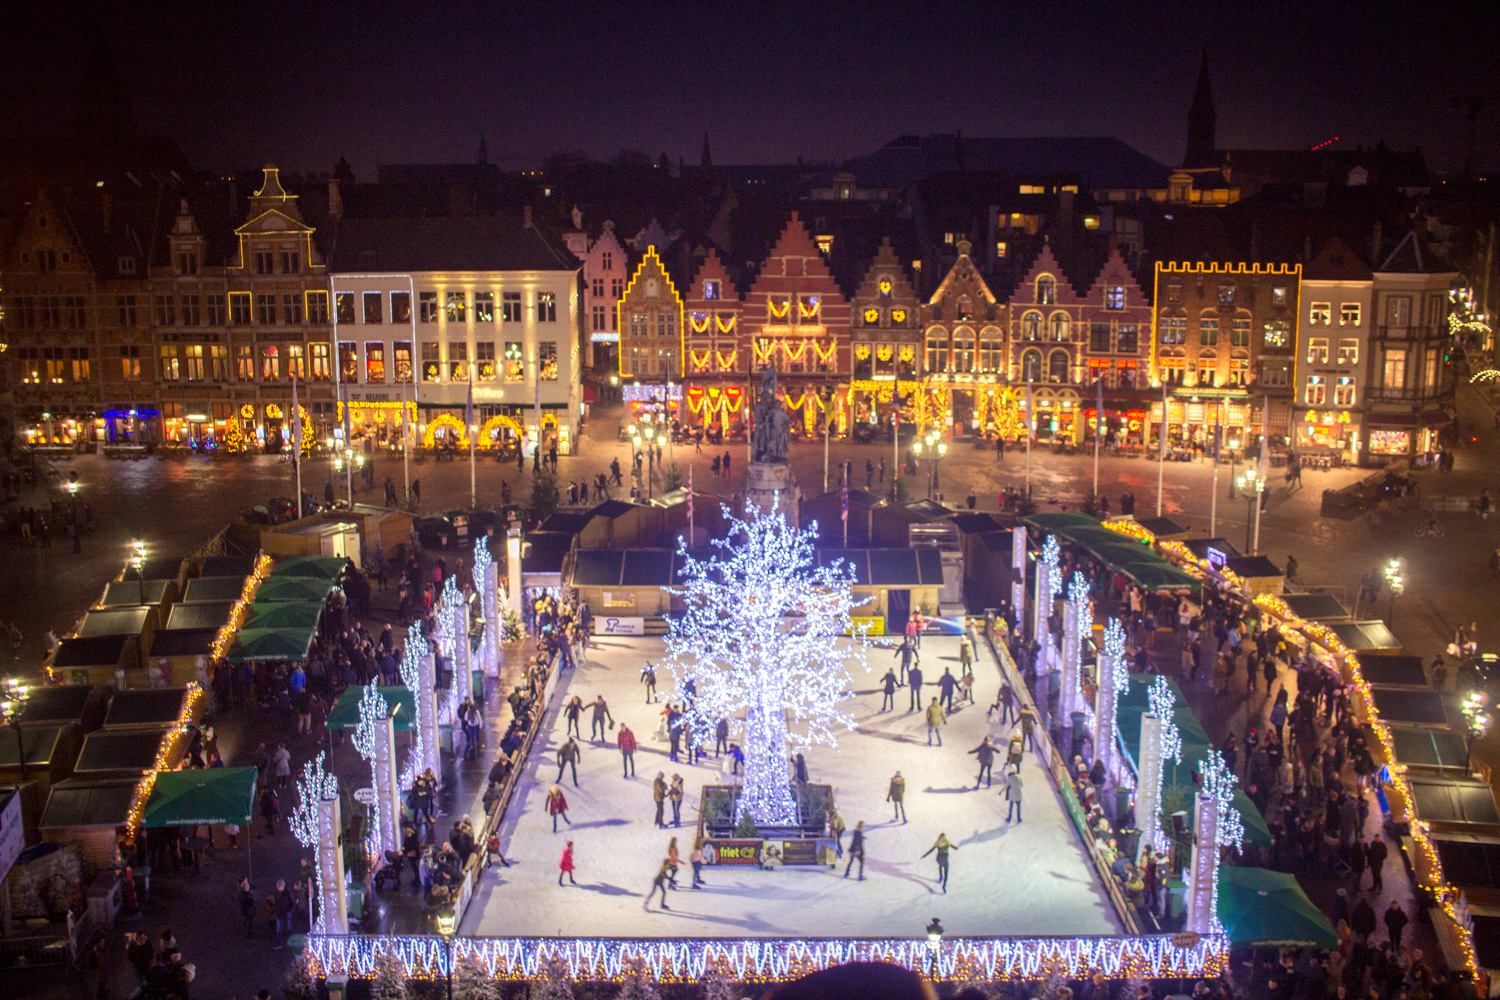 The Markt of Bruges Belgium at night